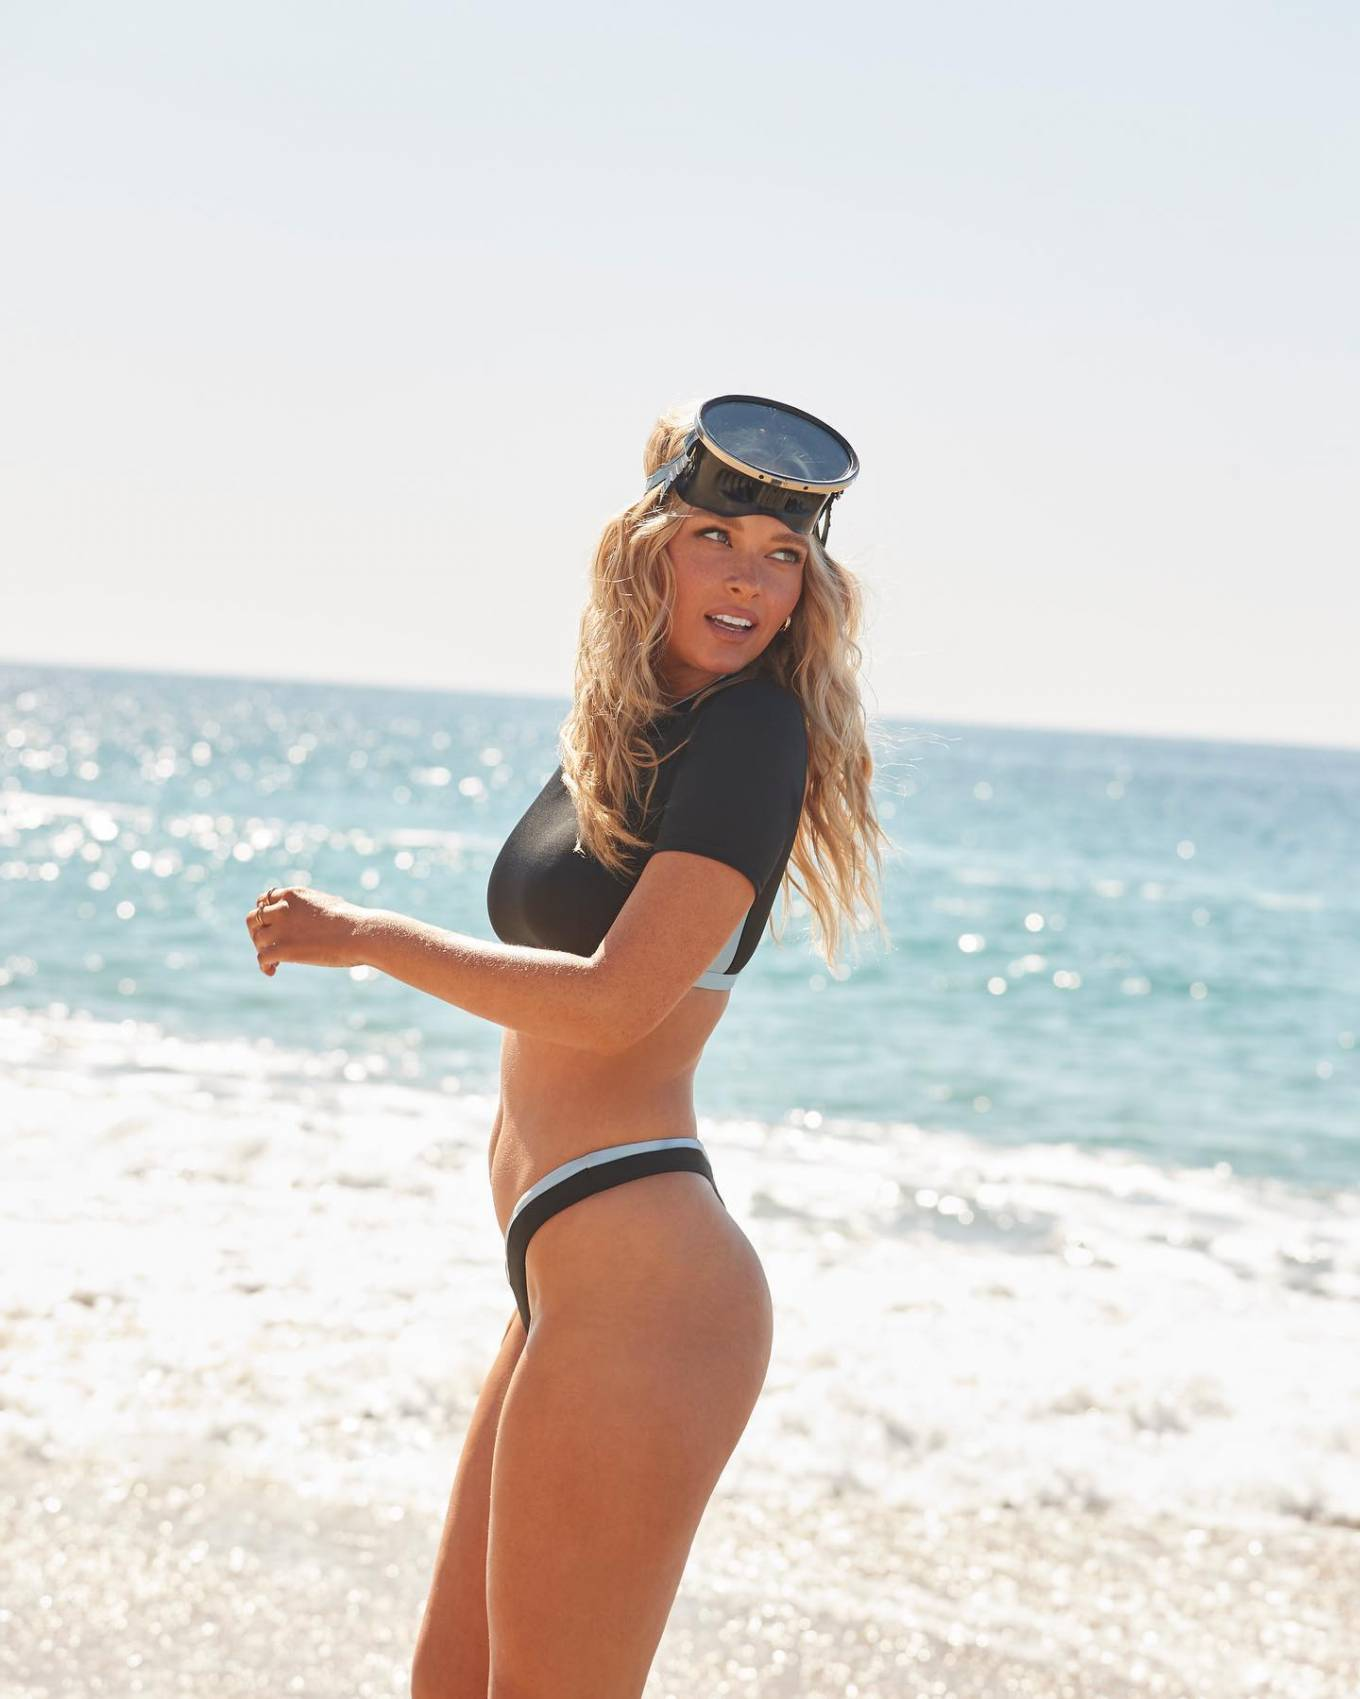 Camille Kostek - Swimsuits For All Camille Kostek collection (2021)